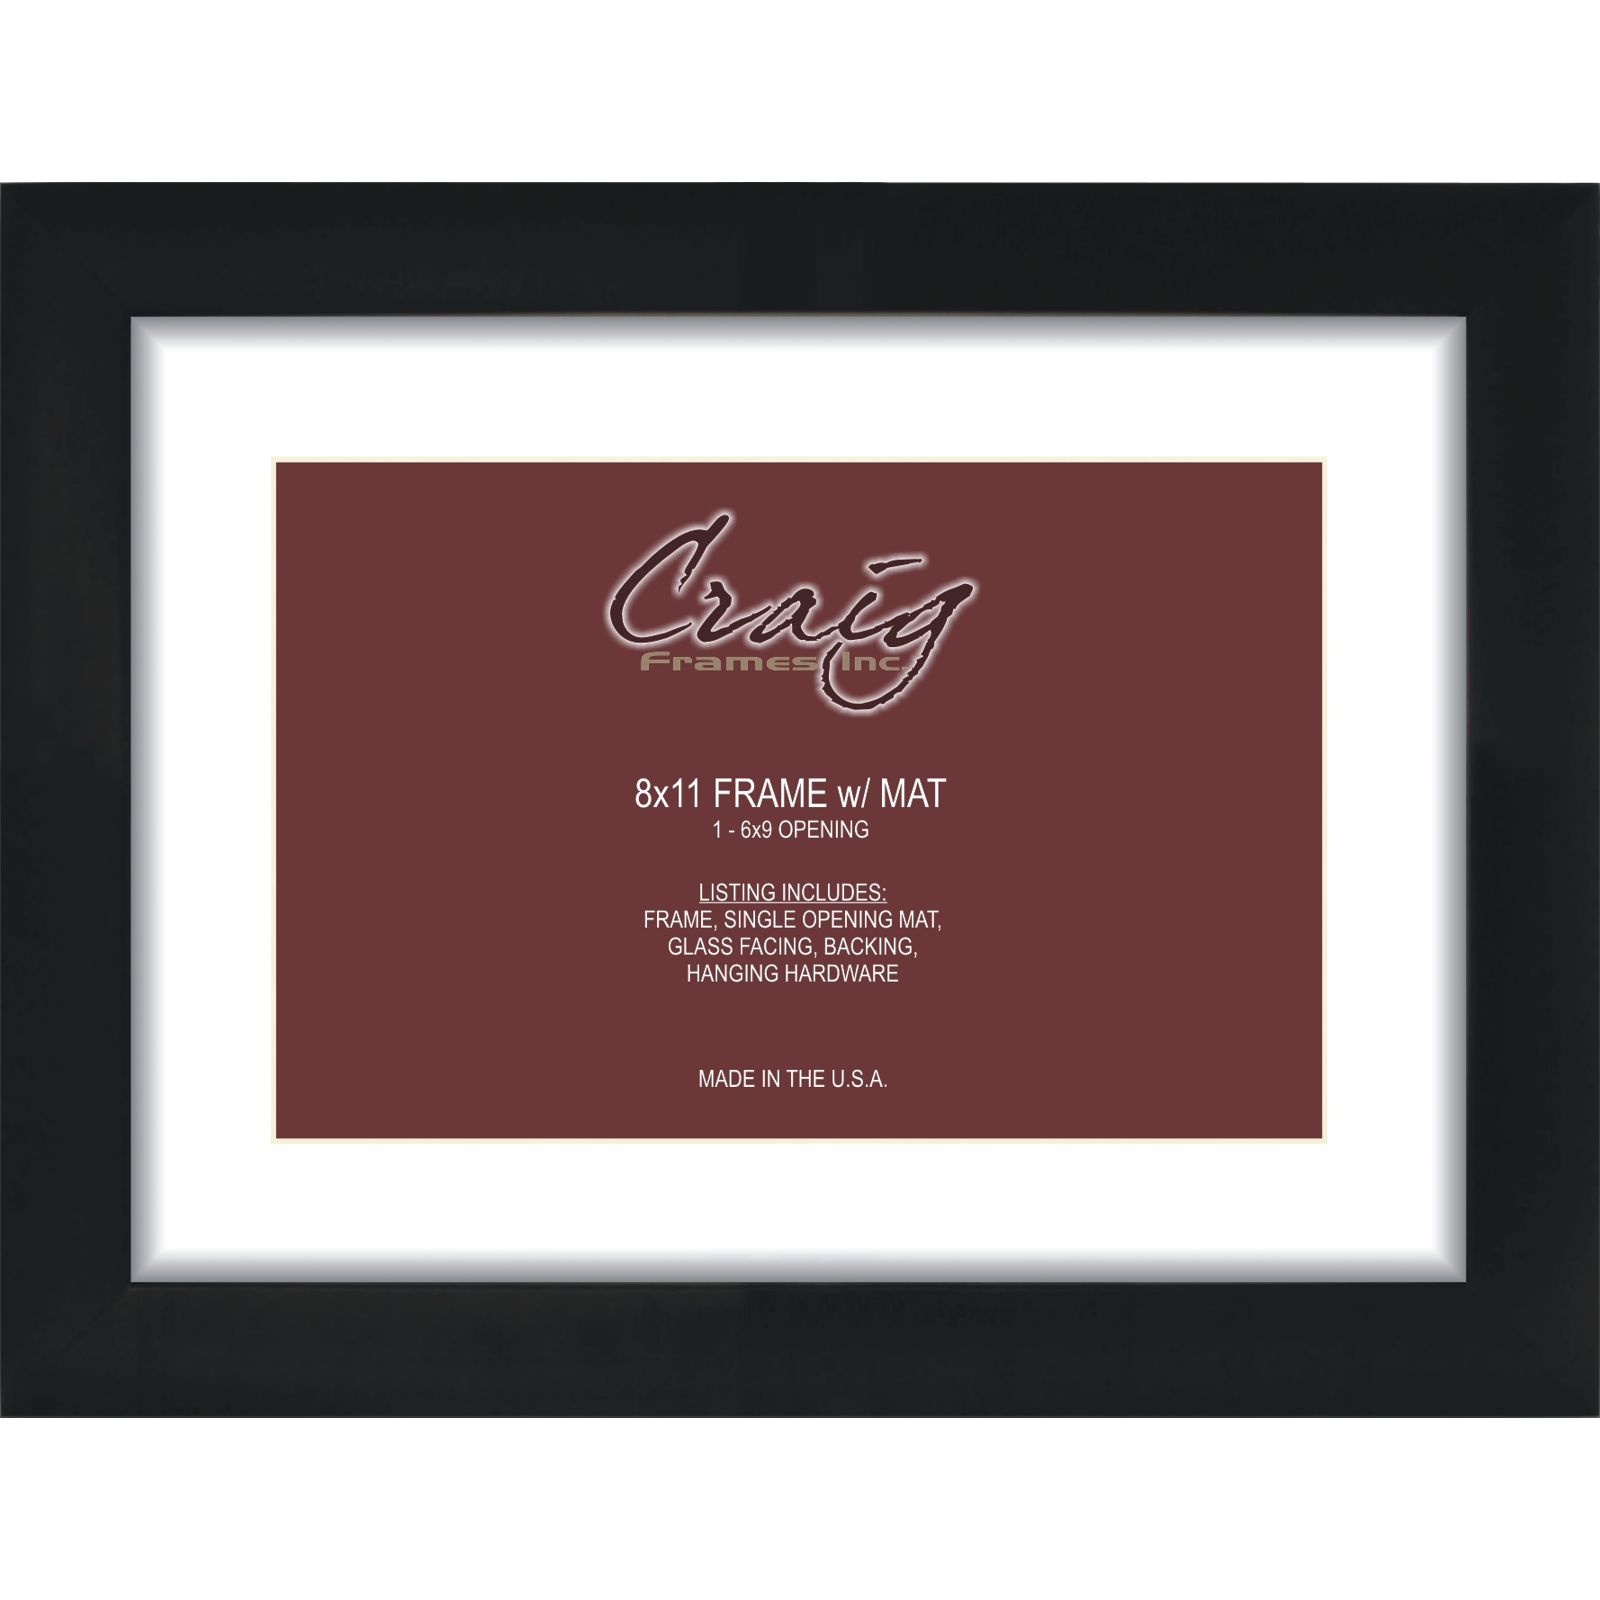 craig frames 8x11 black picture frame white mat with opening for 6x9 image